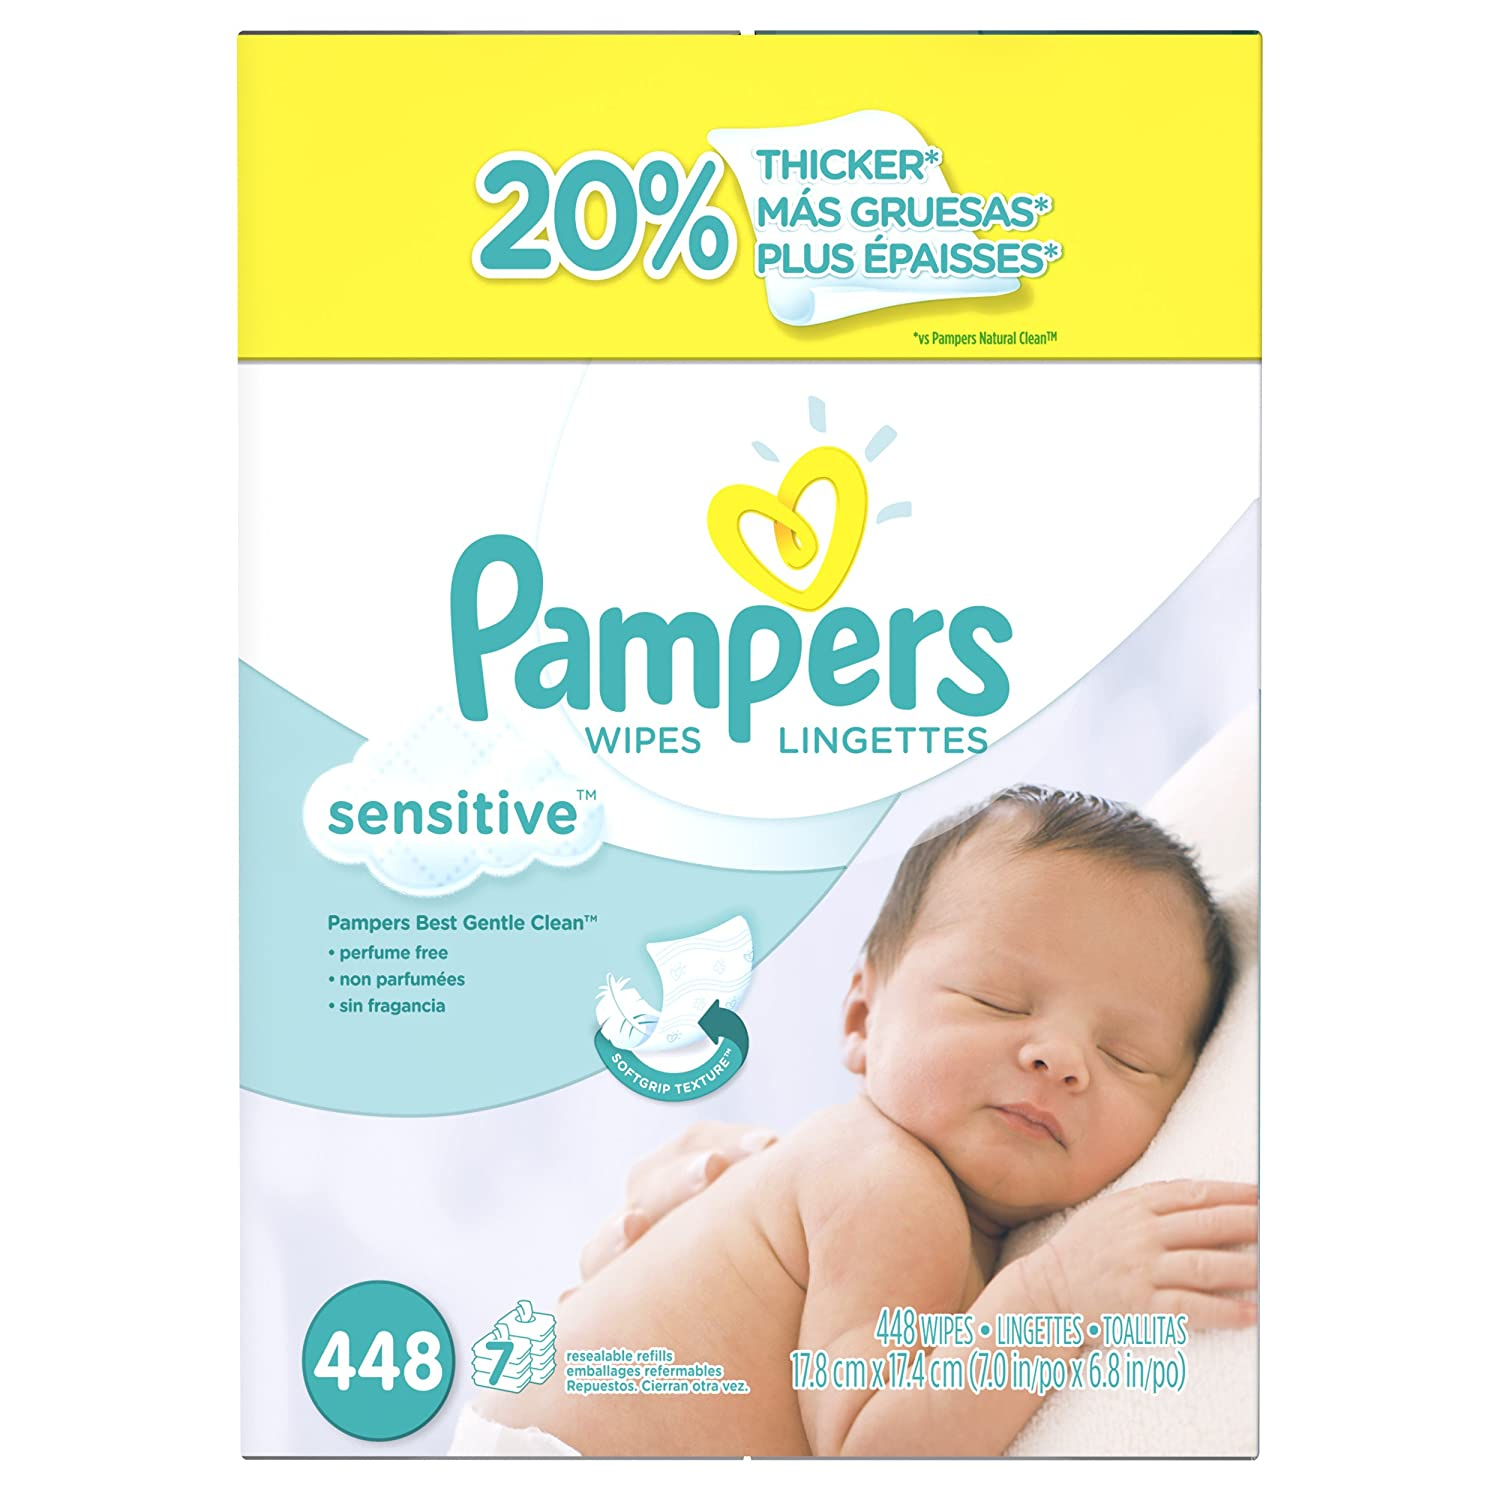 Details about pampers wipes 504 count box softcare 7x baby diapers